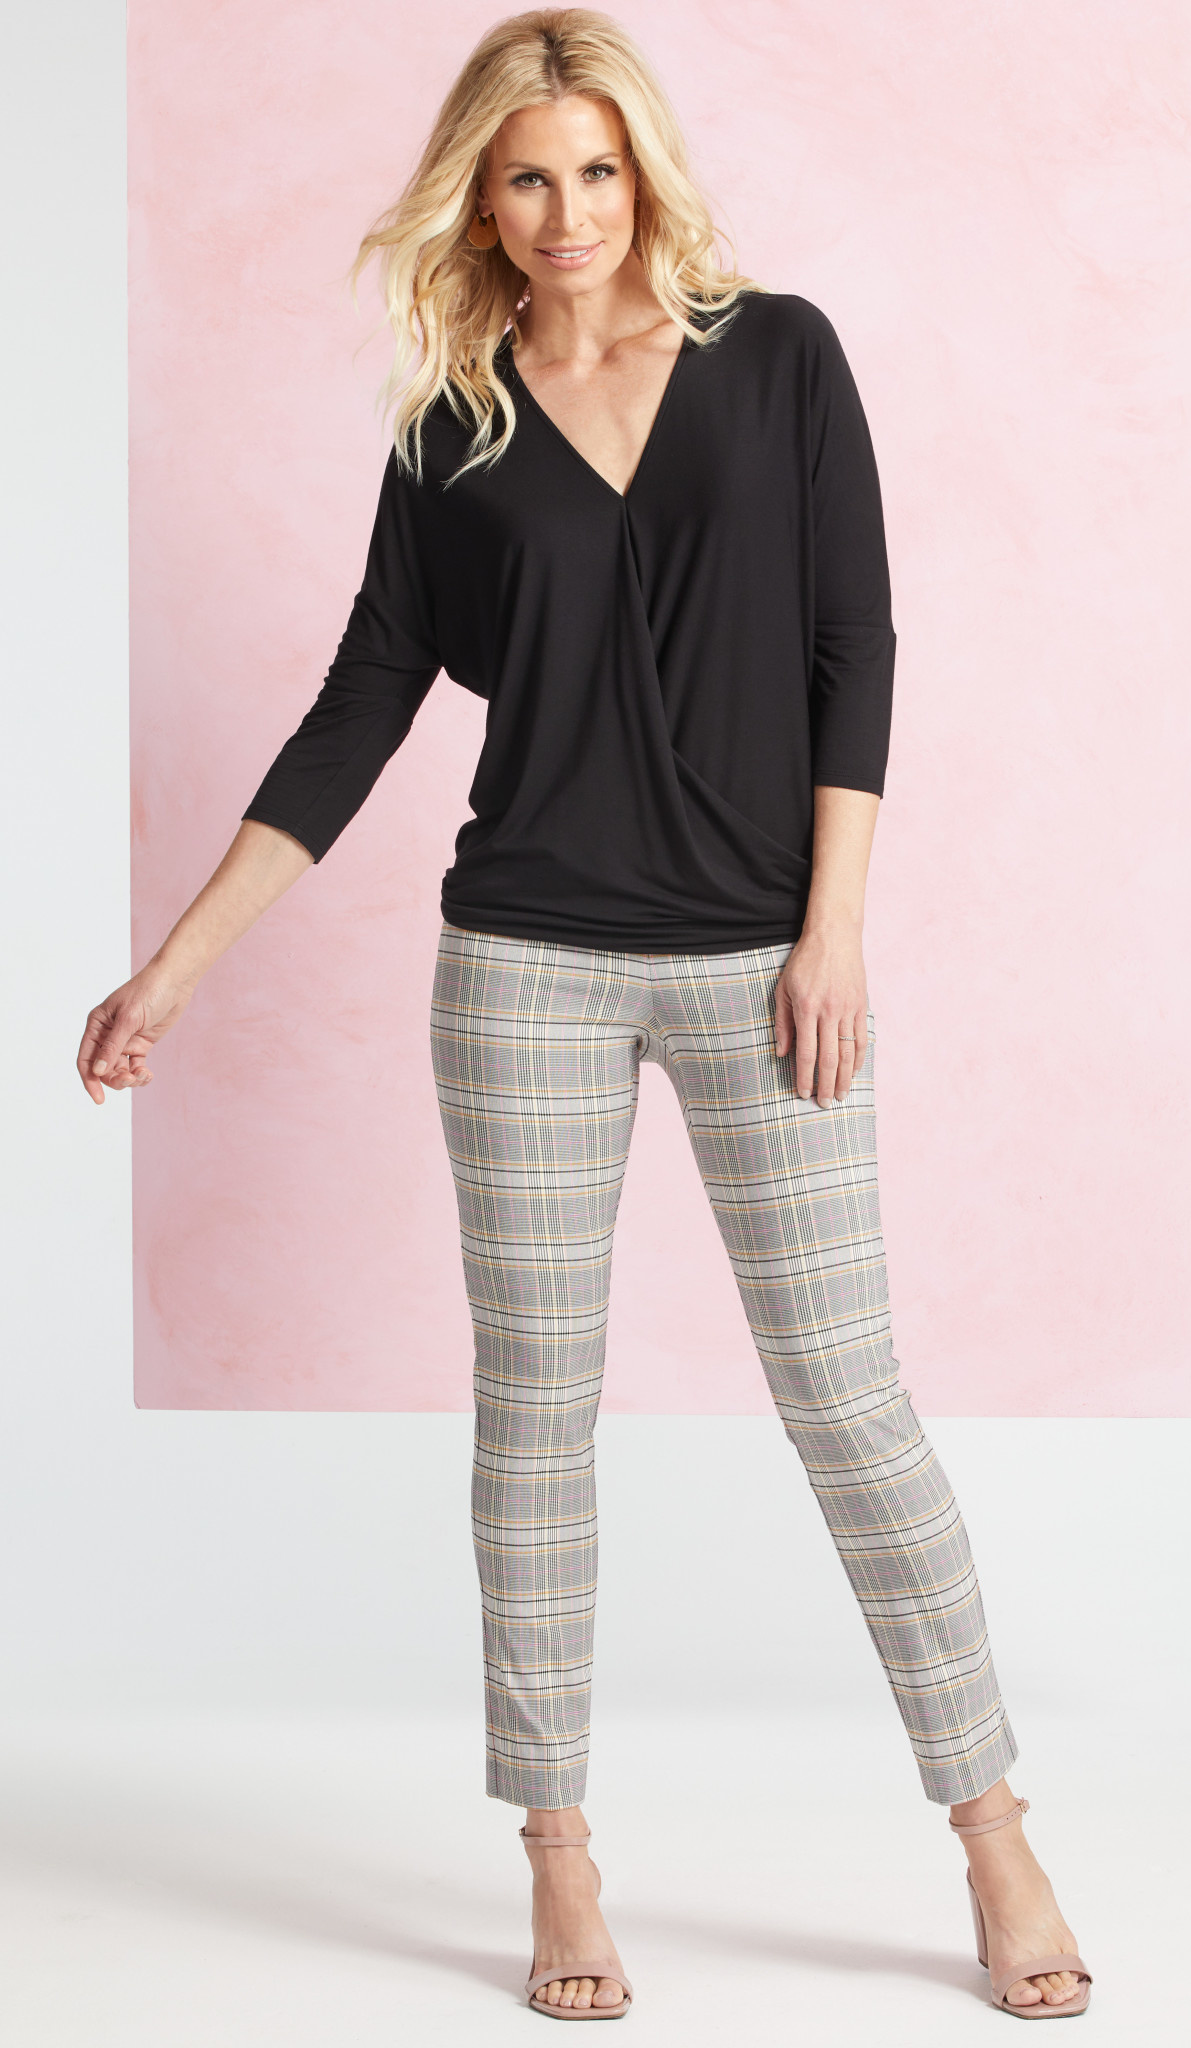 Looking For The Best Fashion Skort? Try UP! Pants